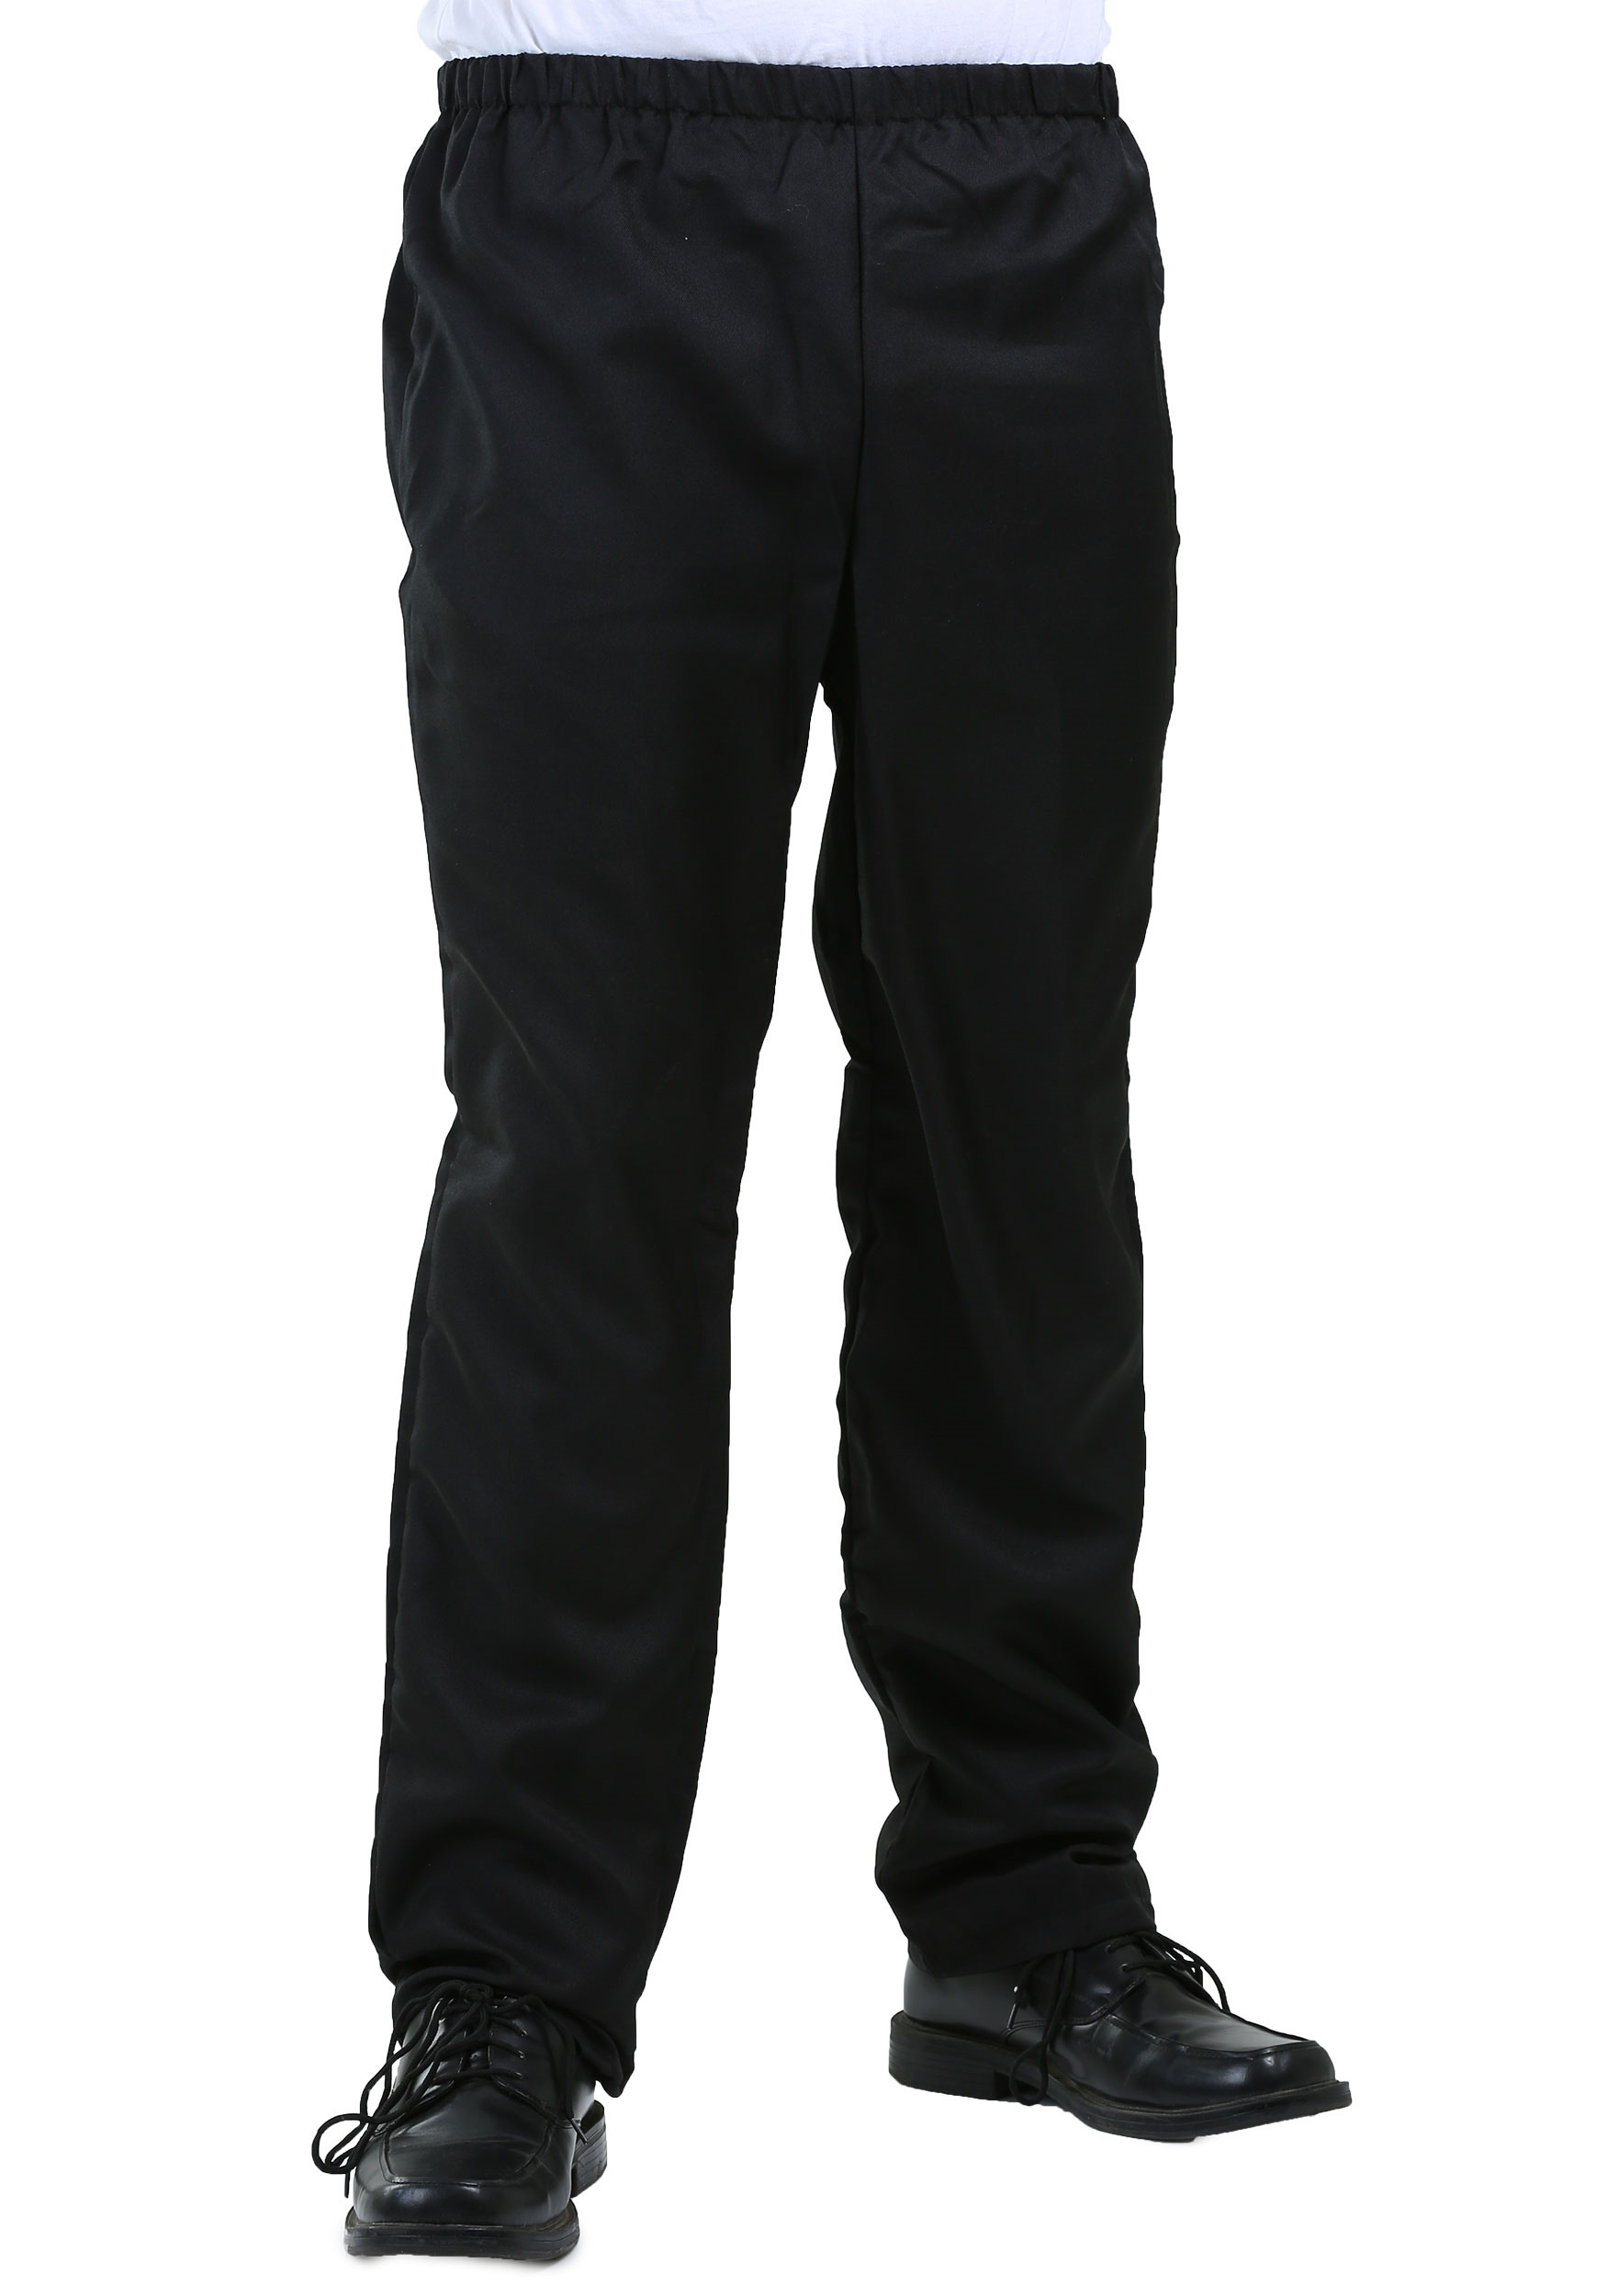 Black Pants for Men